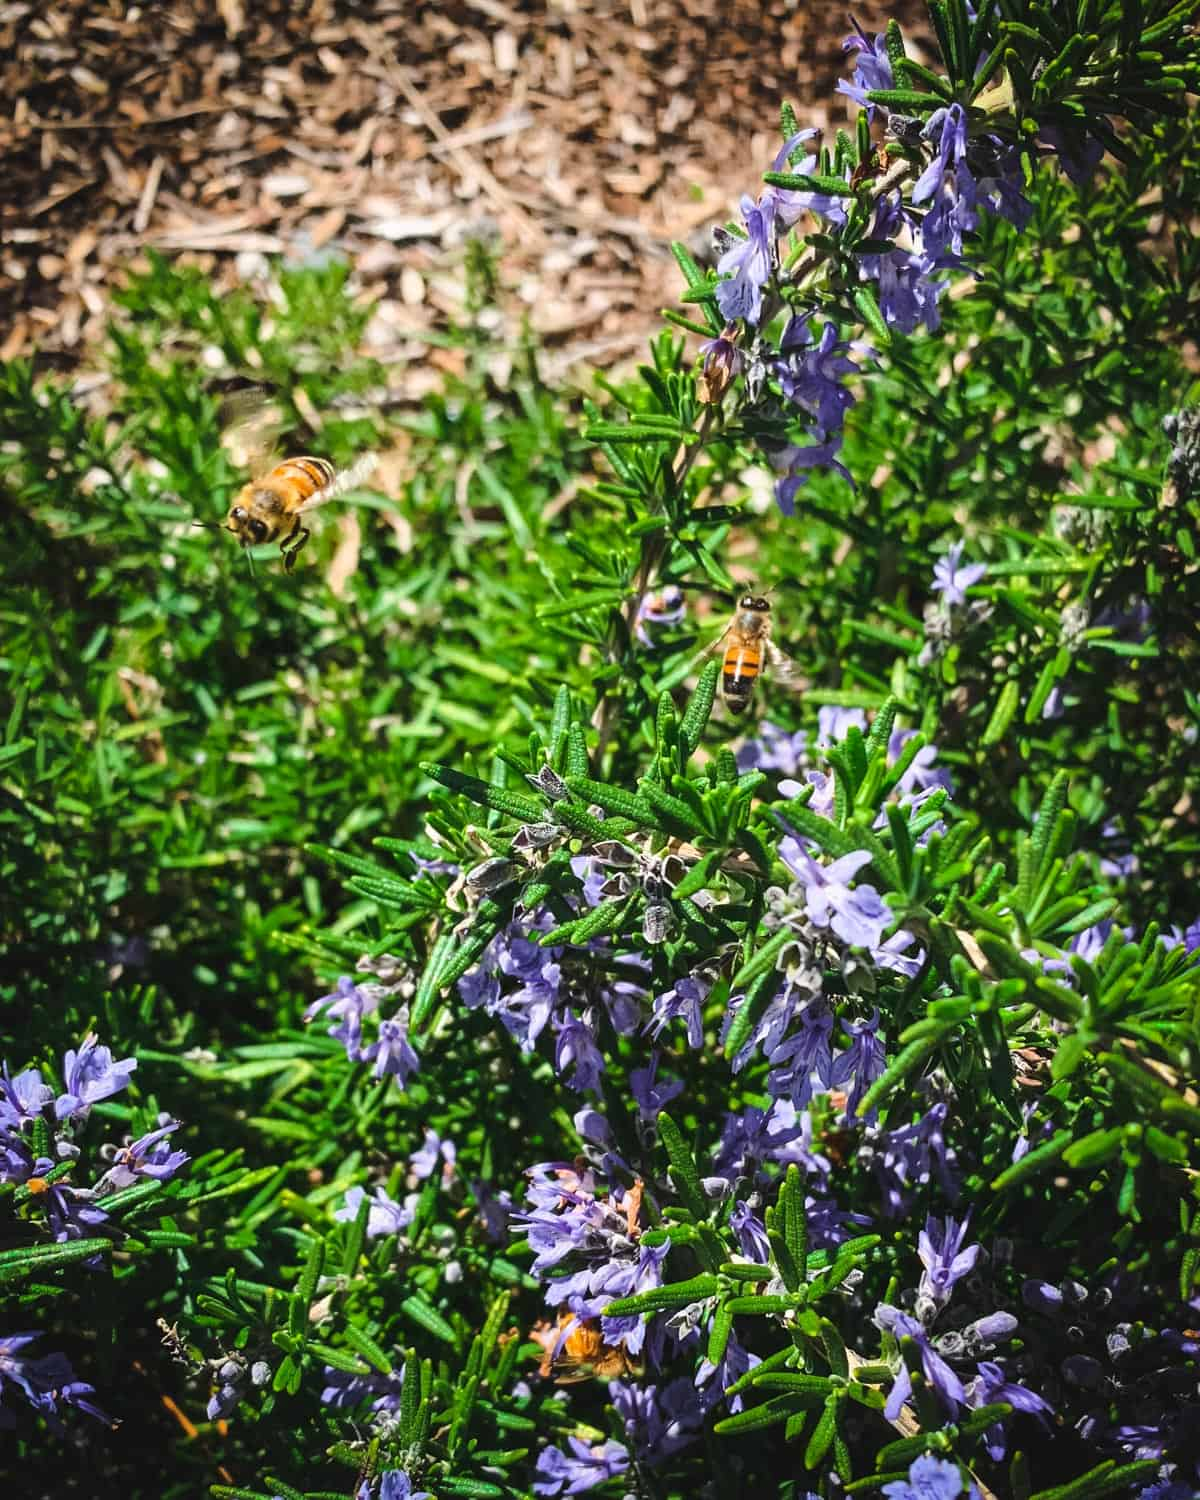 a rosemary plant with several honey bees